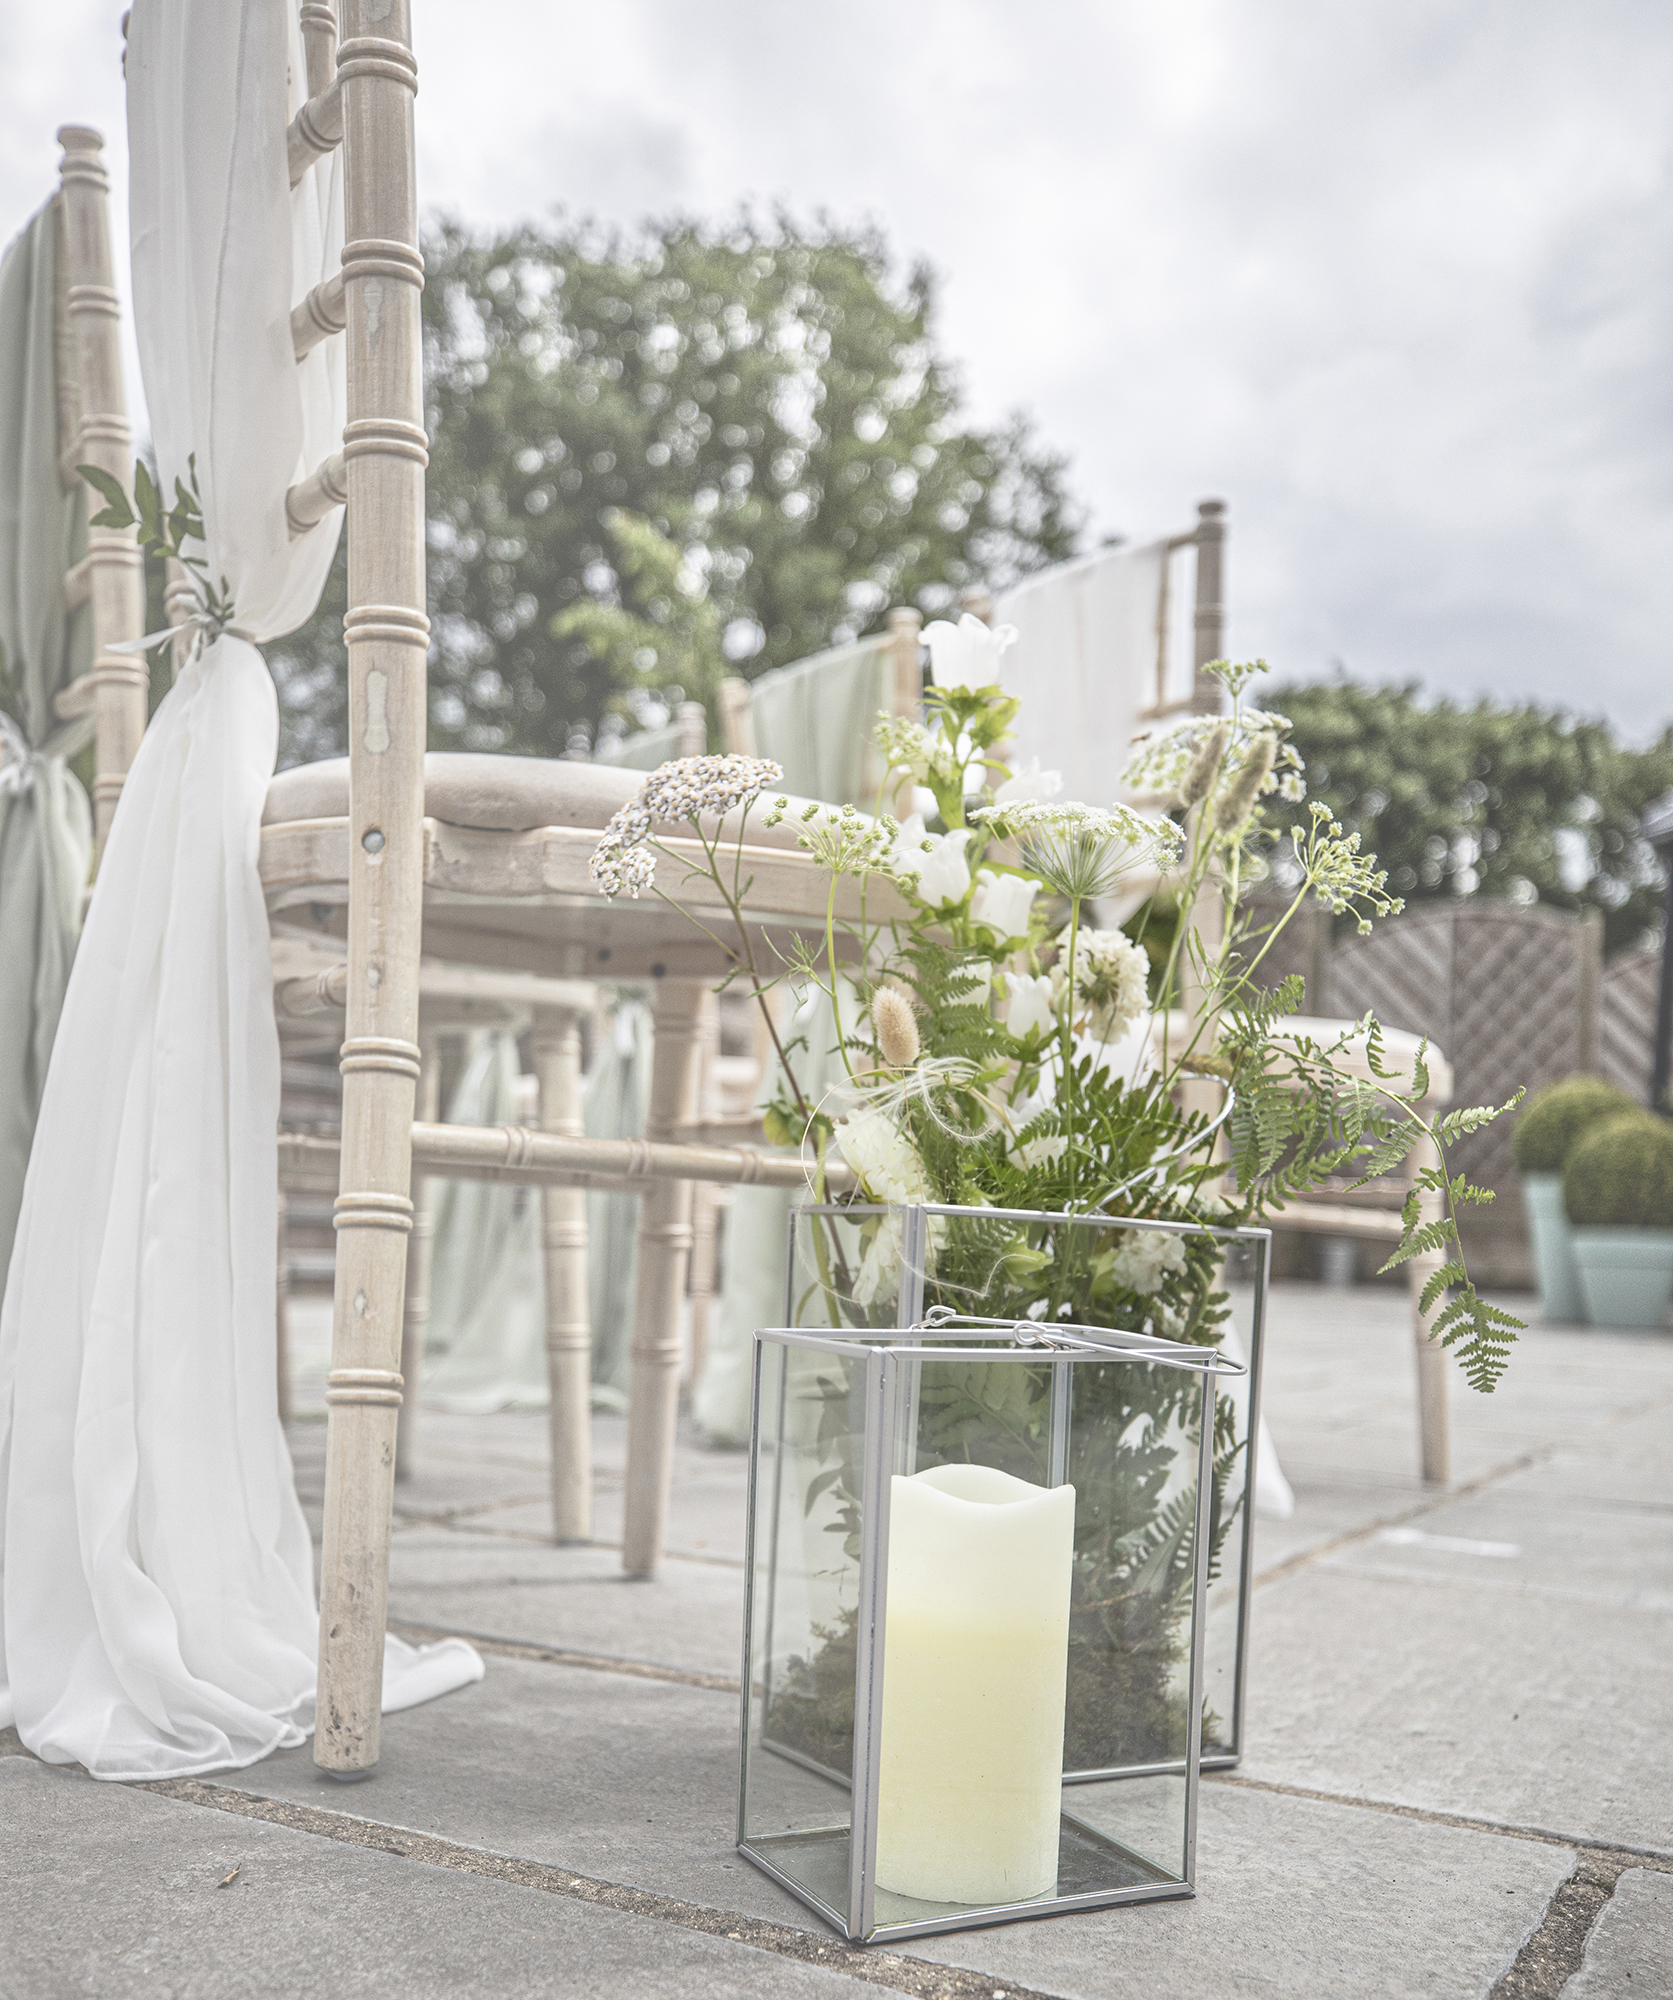 A candle and flowers ready for a marriage at All Saints Hotel, Bury St Edmunds